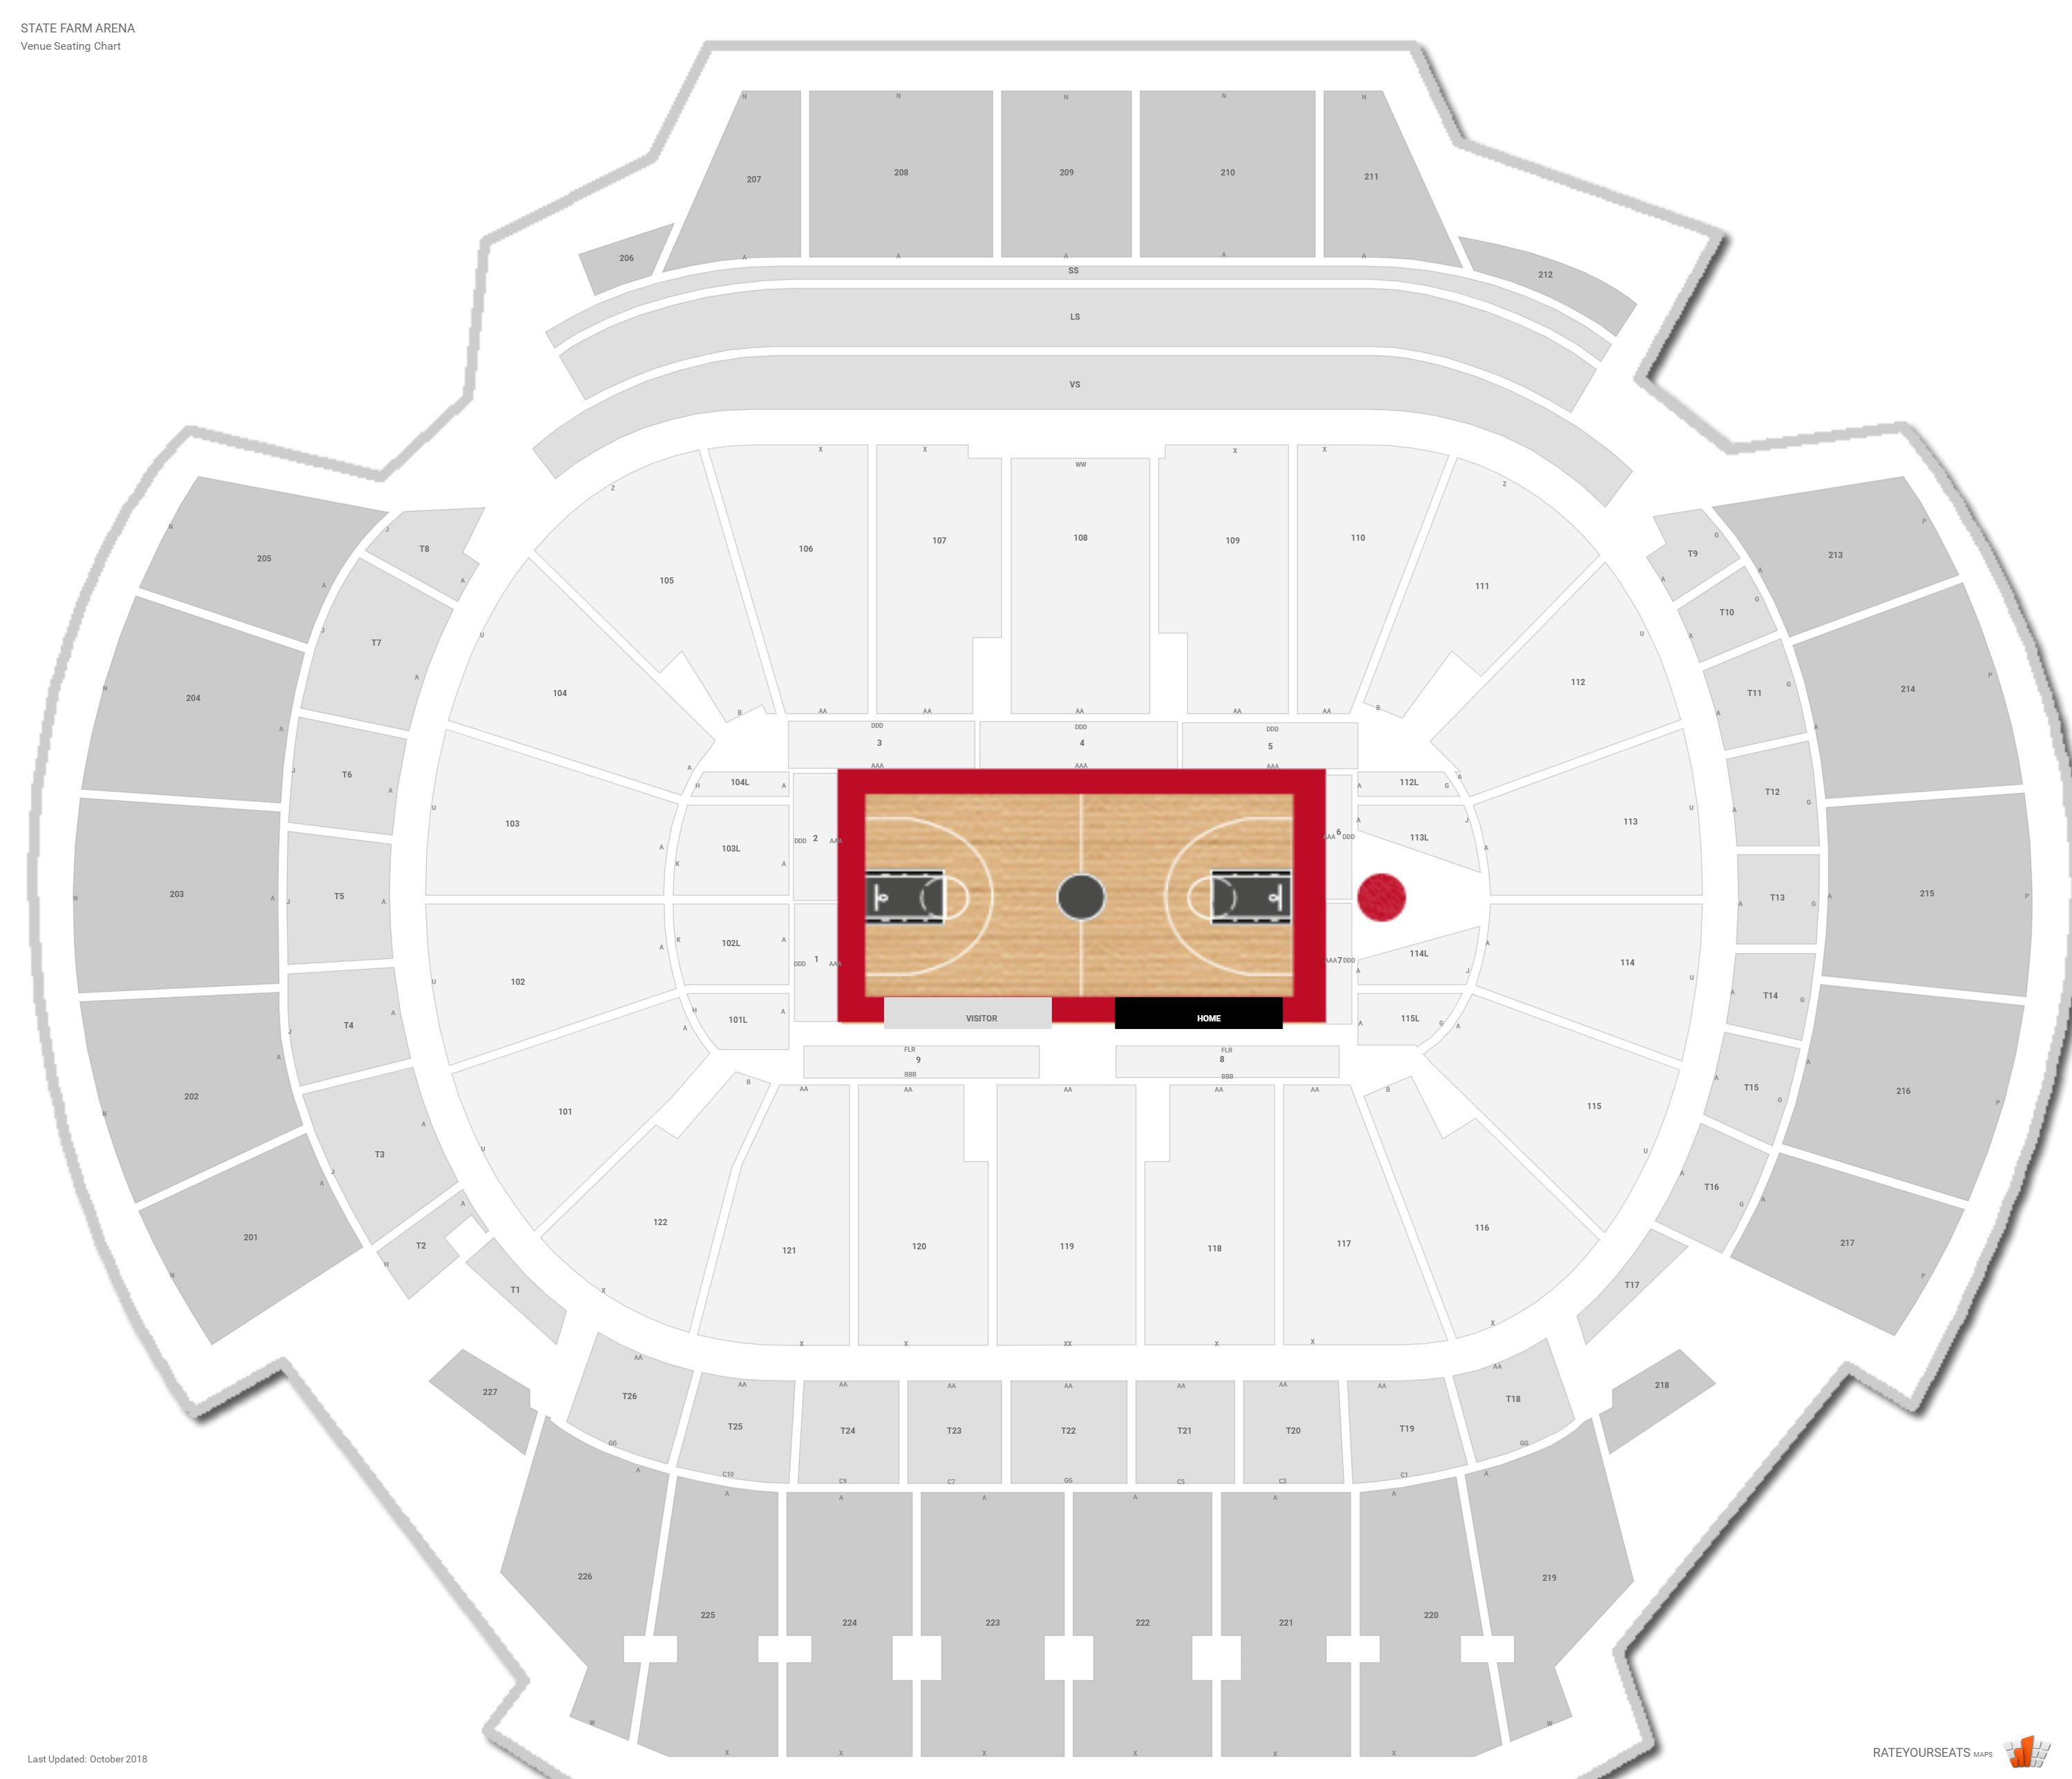 State Farm Arena Seating Chart With Row Numbers